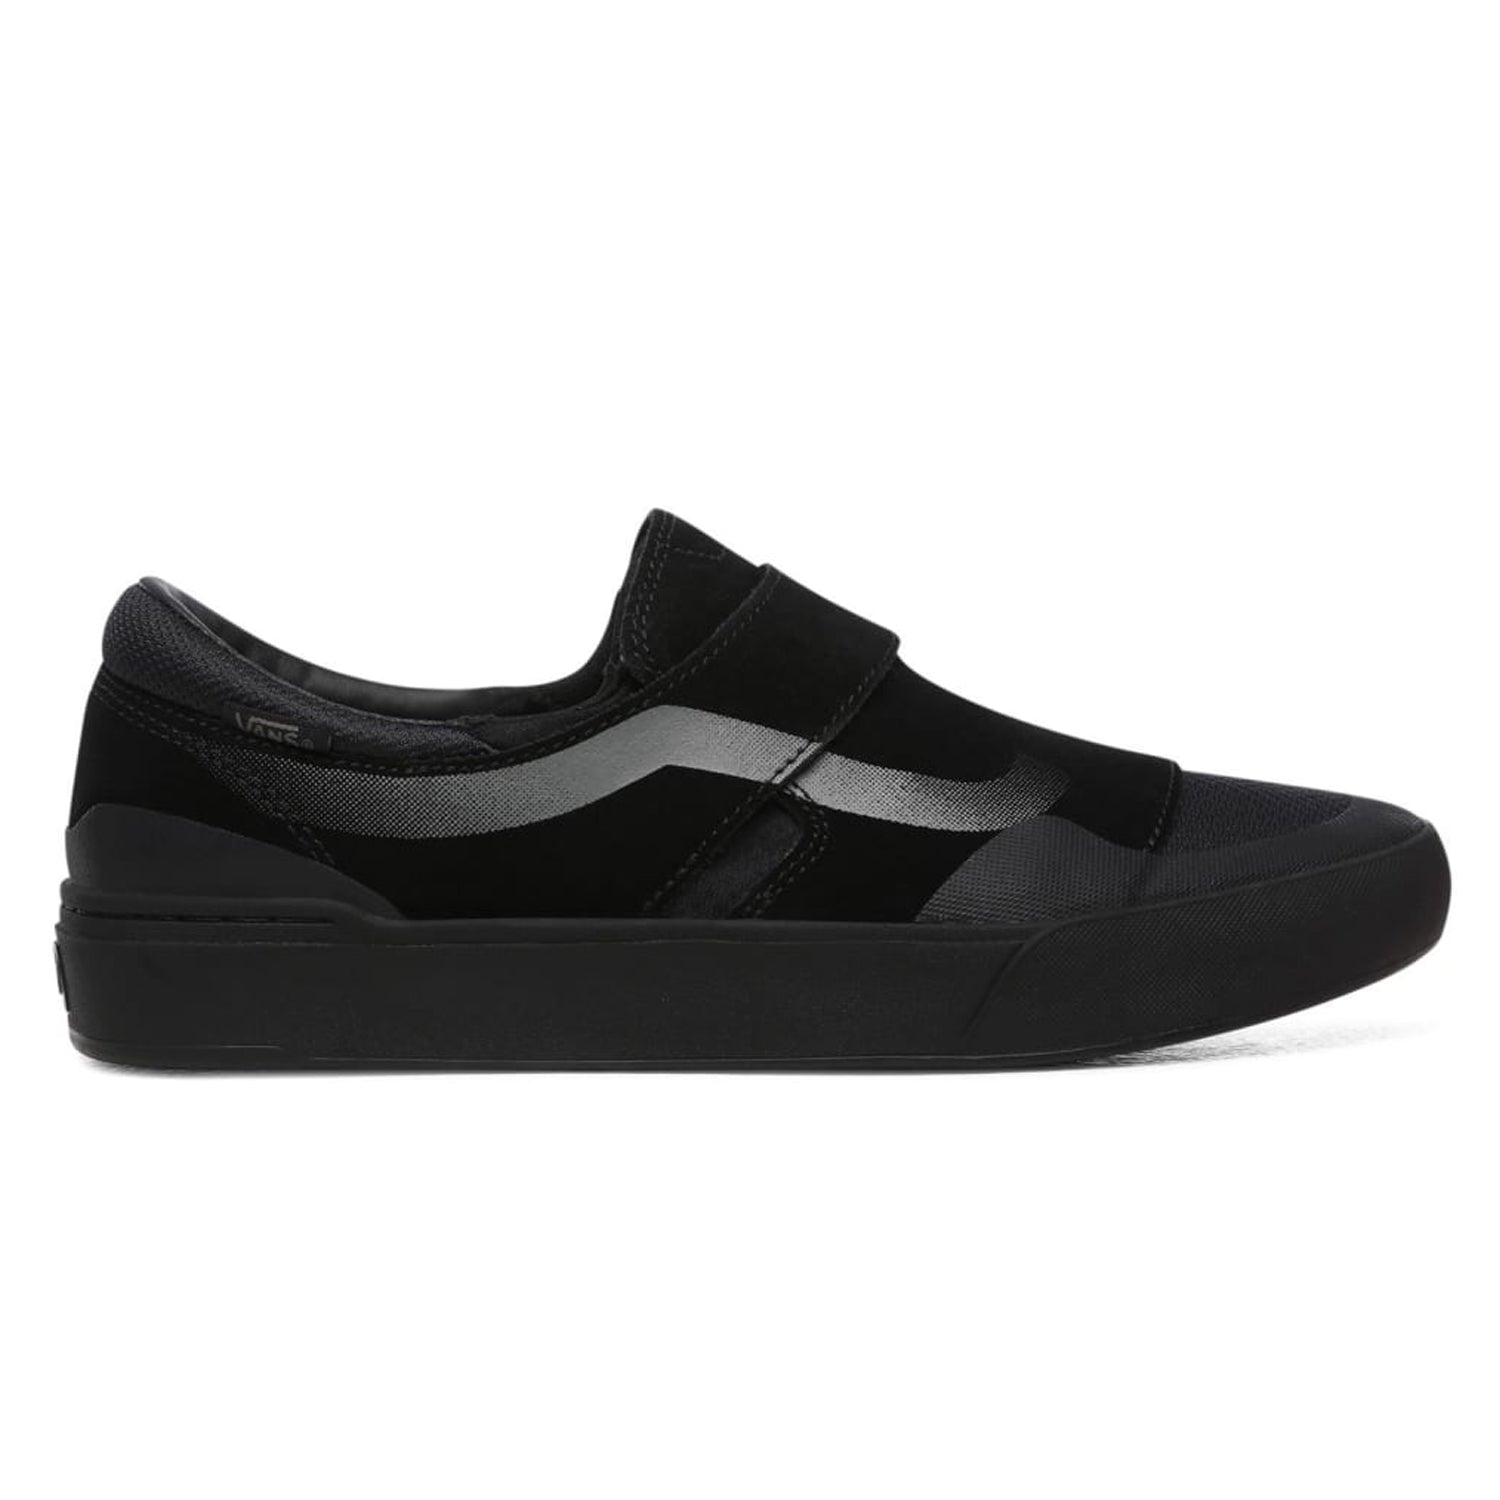 Vans Slip On EXP Pro Blackout